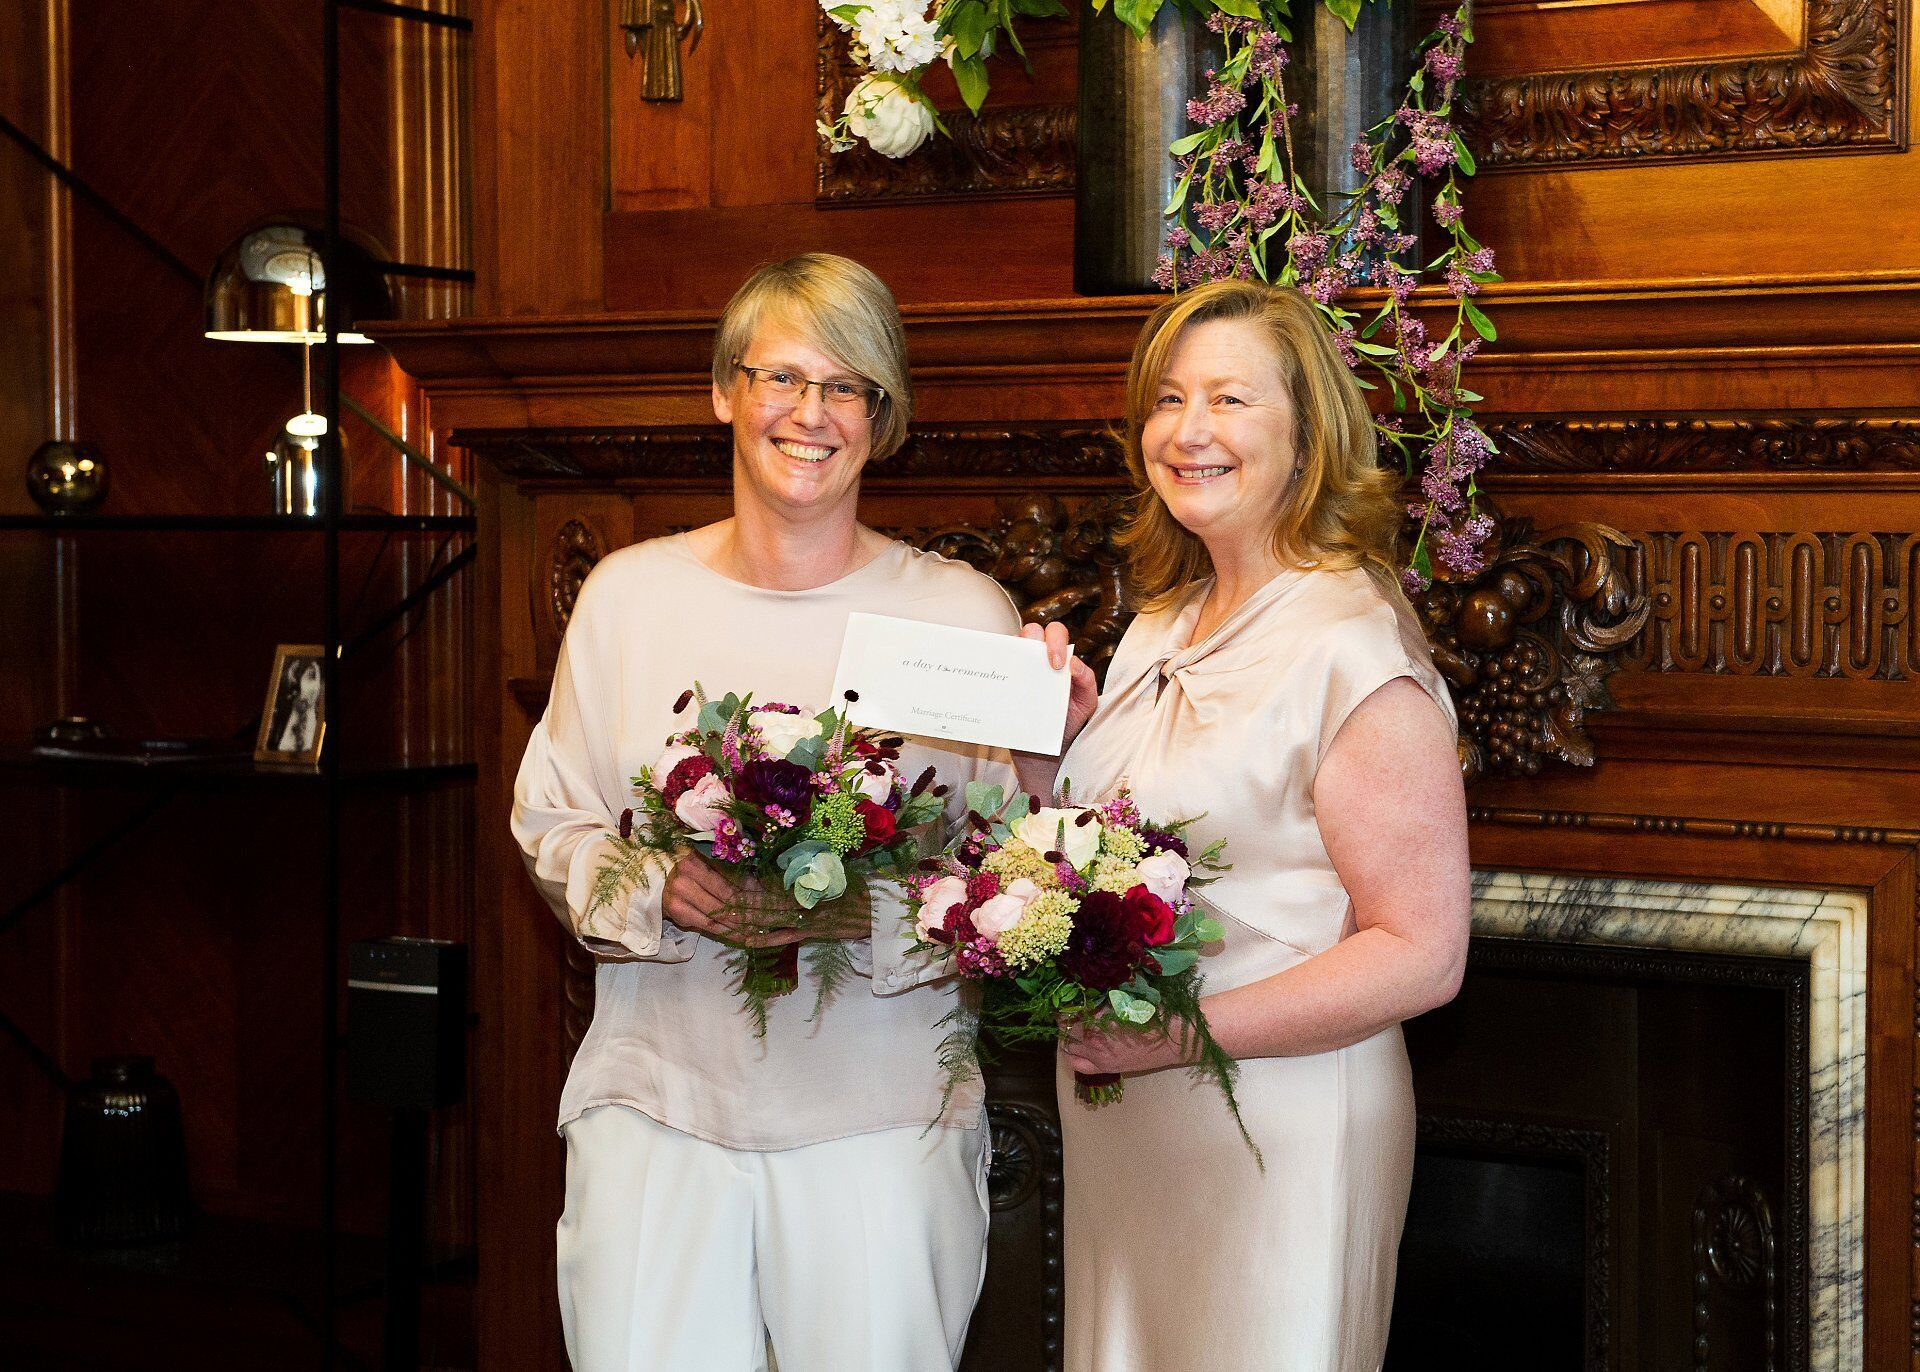 sarah and emma smiling and holding their marriage certificate in the paddington room